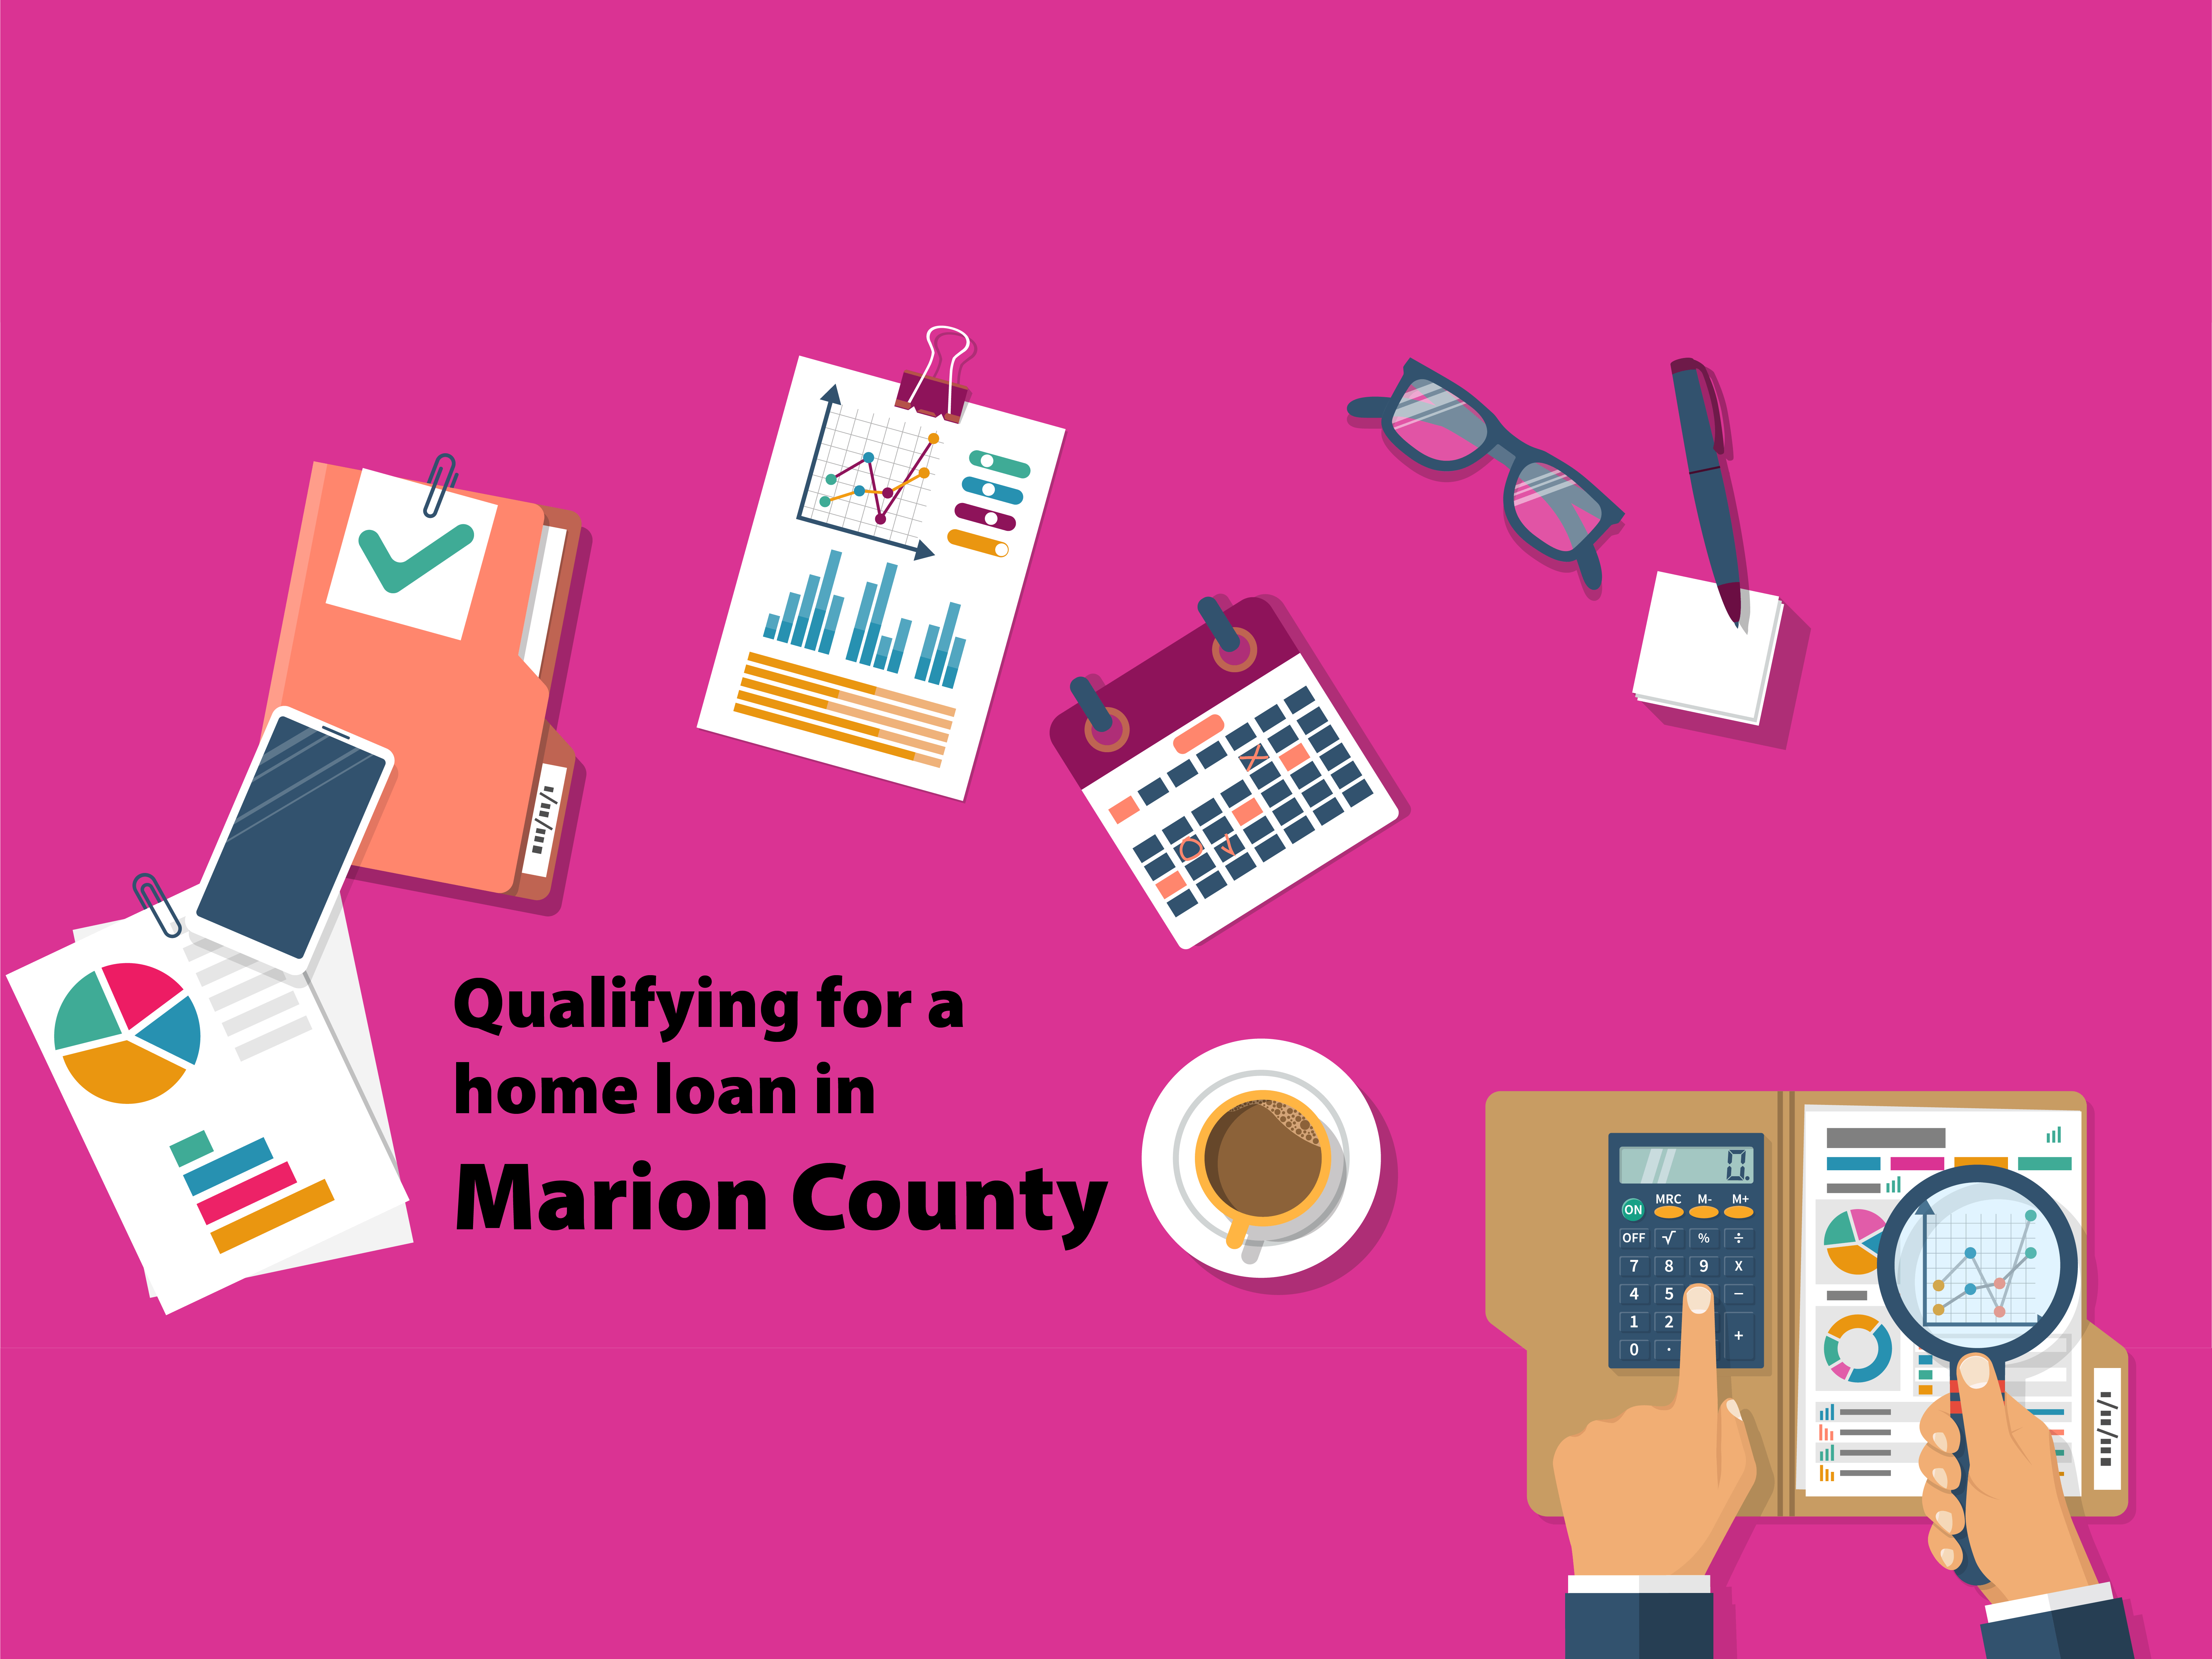 Home loan in Marion County